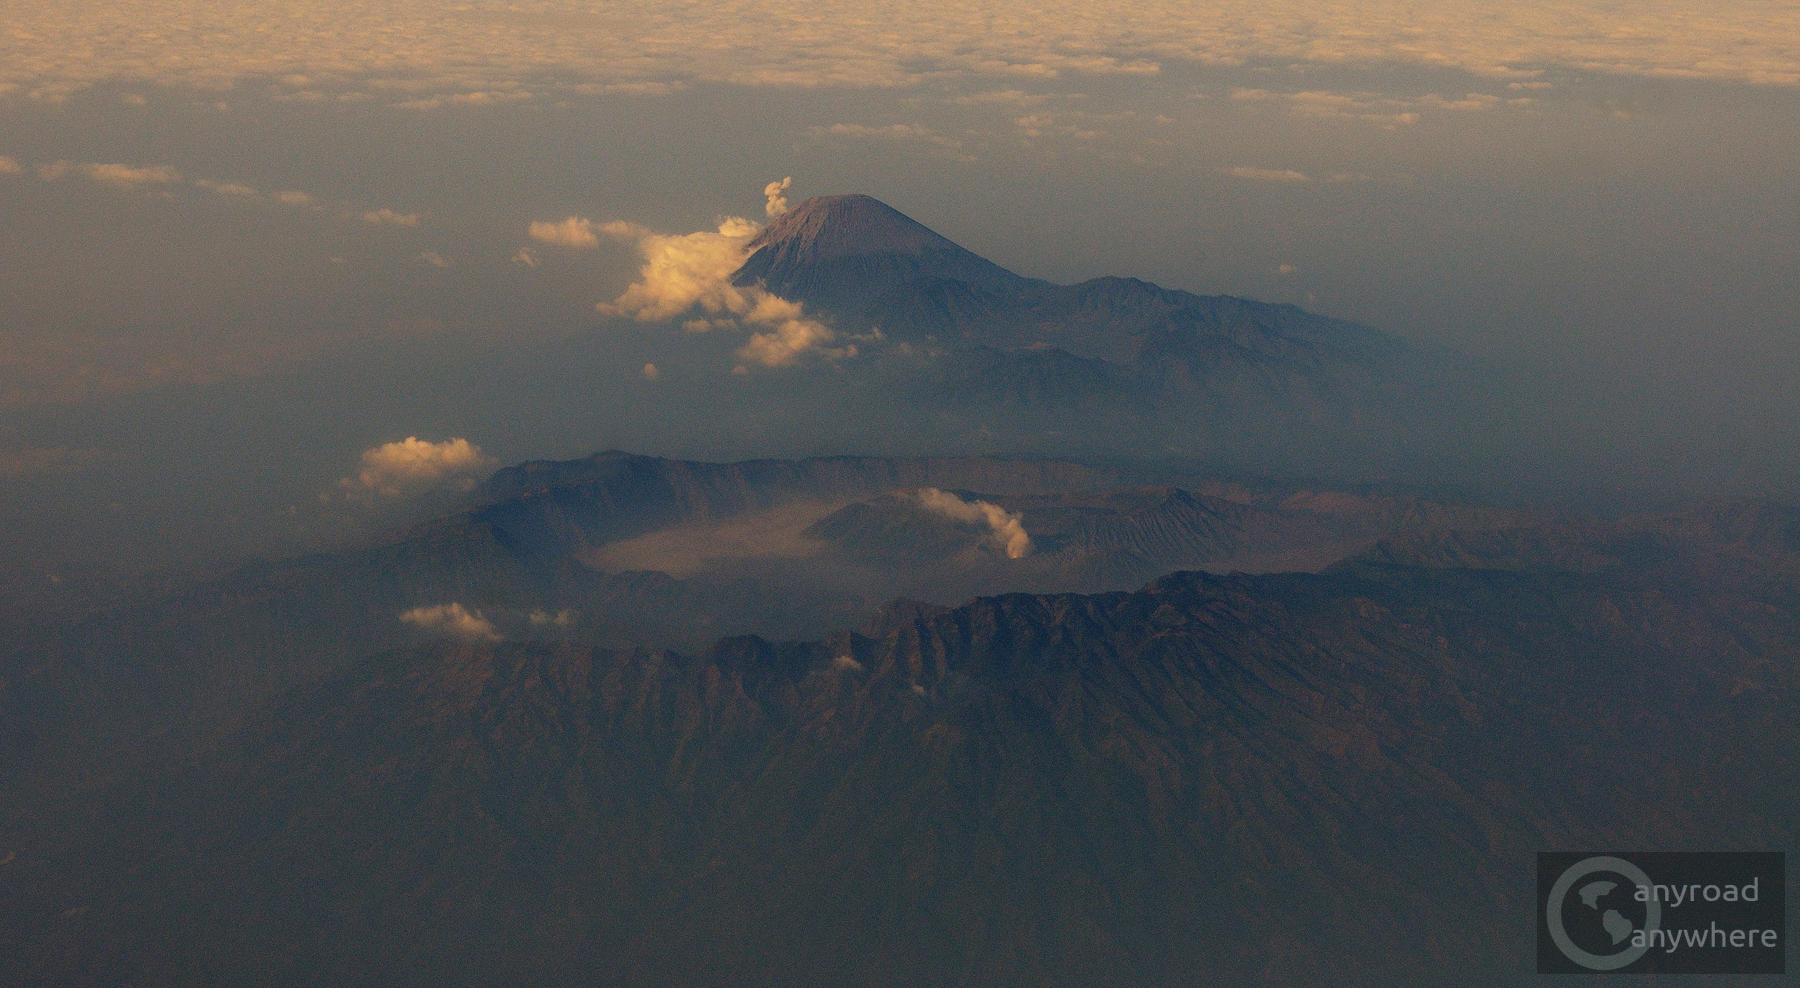 Mount Bromo and Mount Merapi from the plane